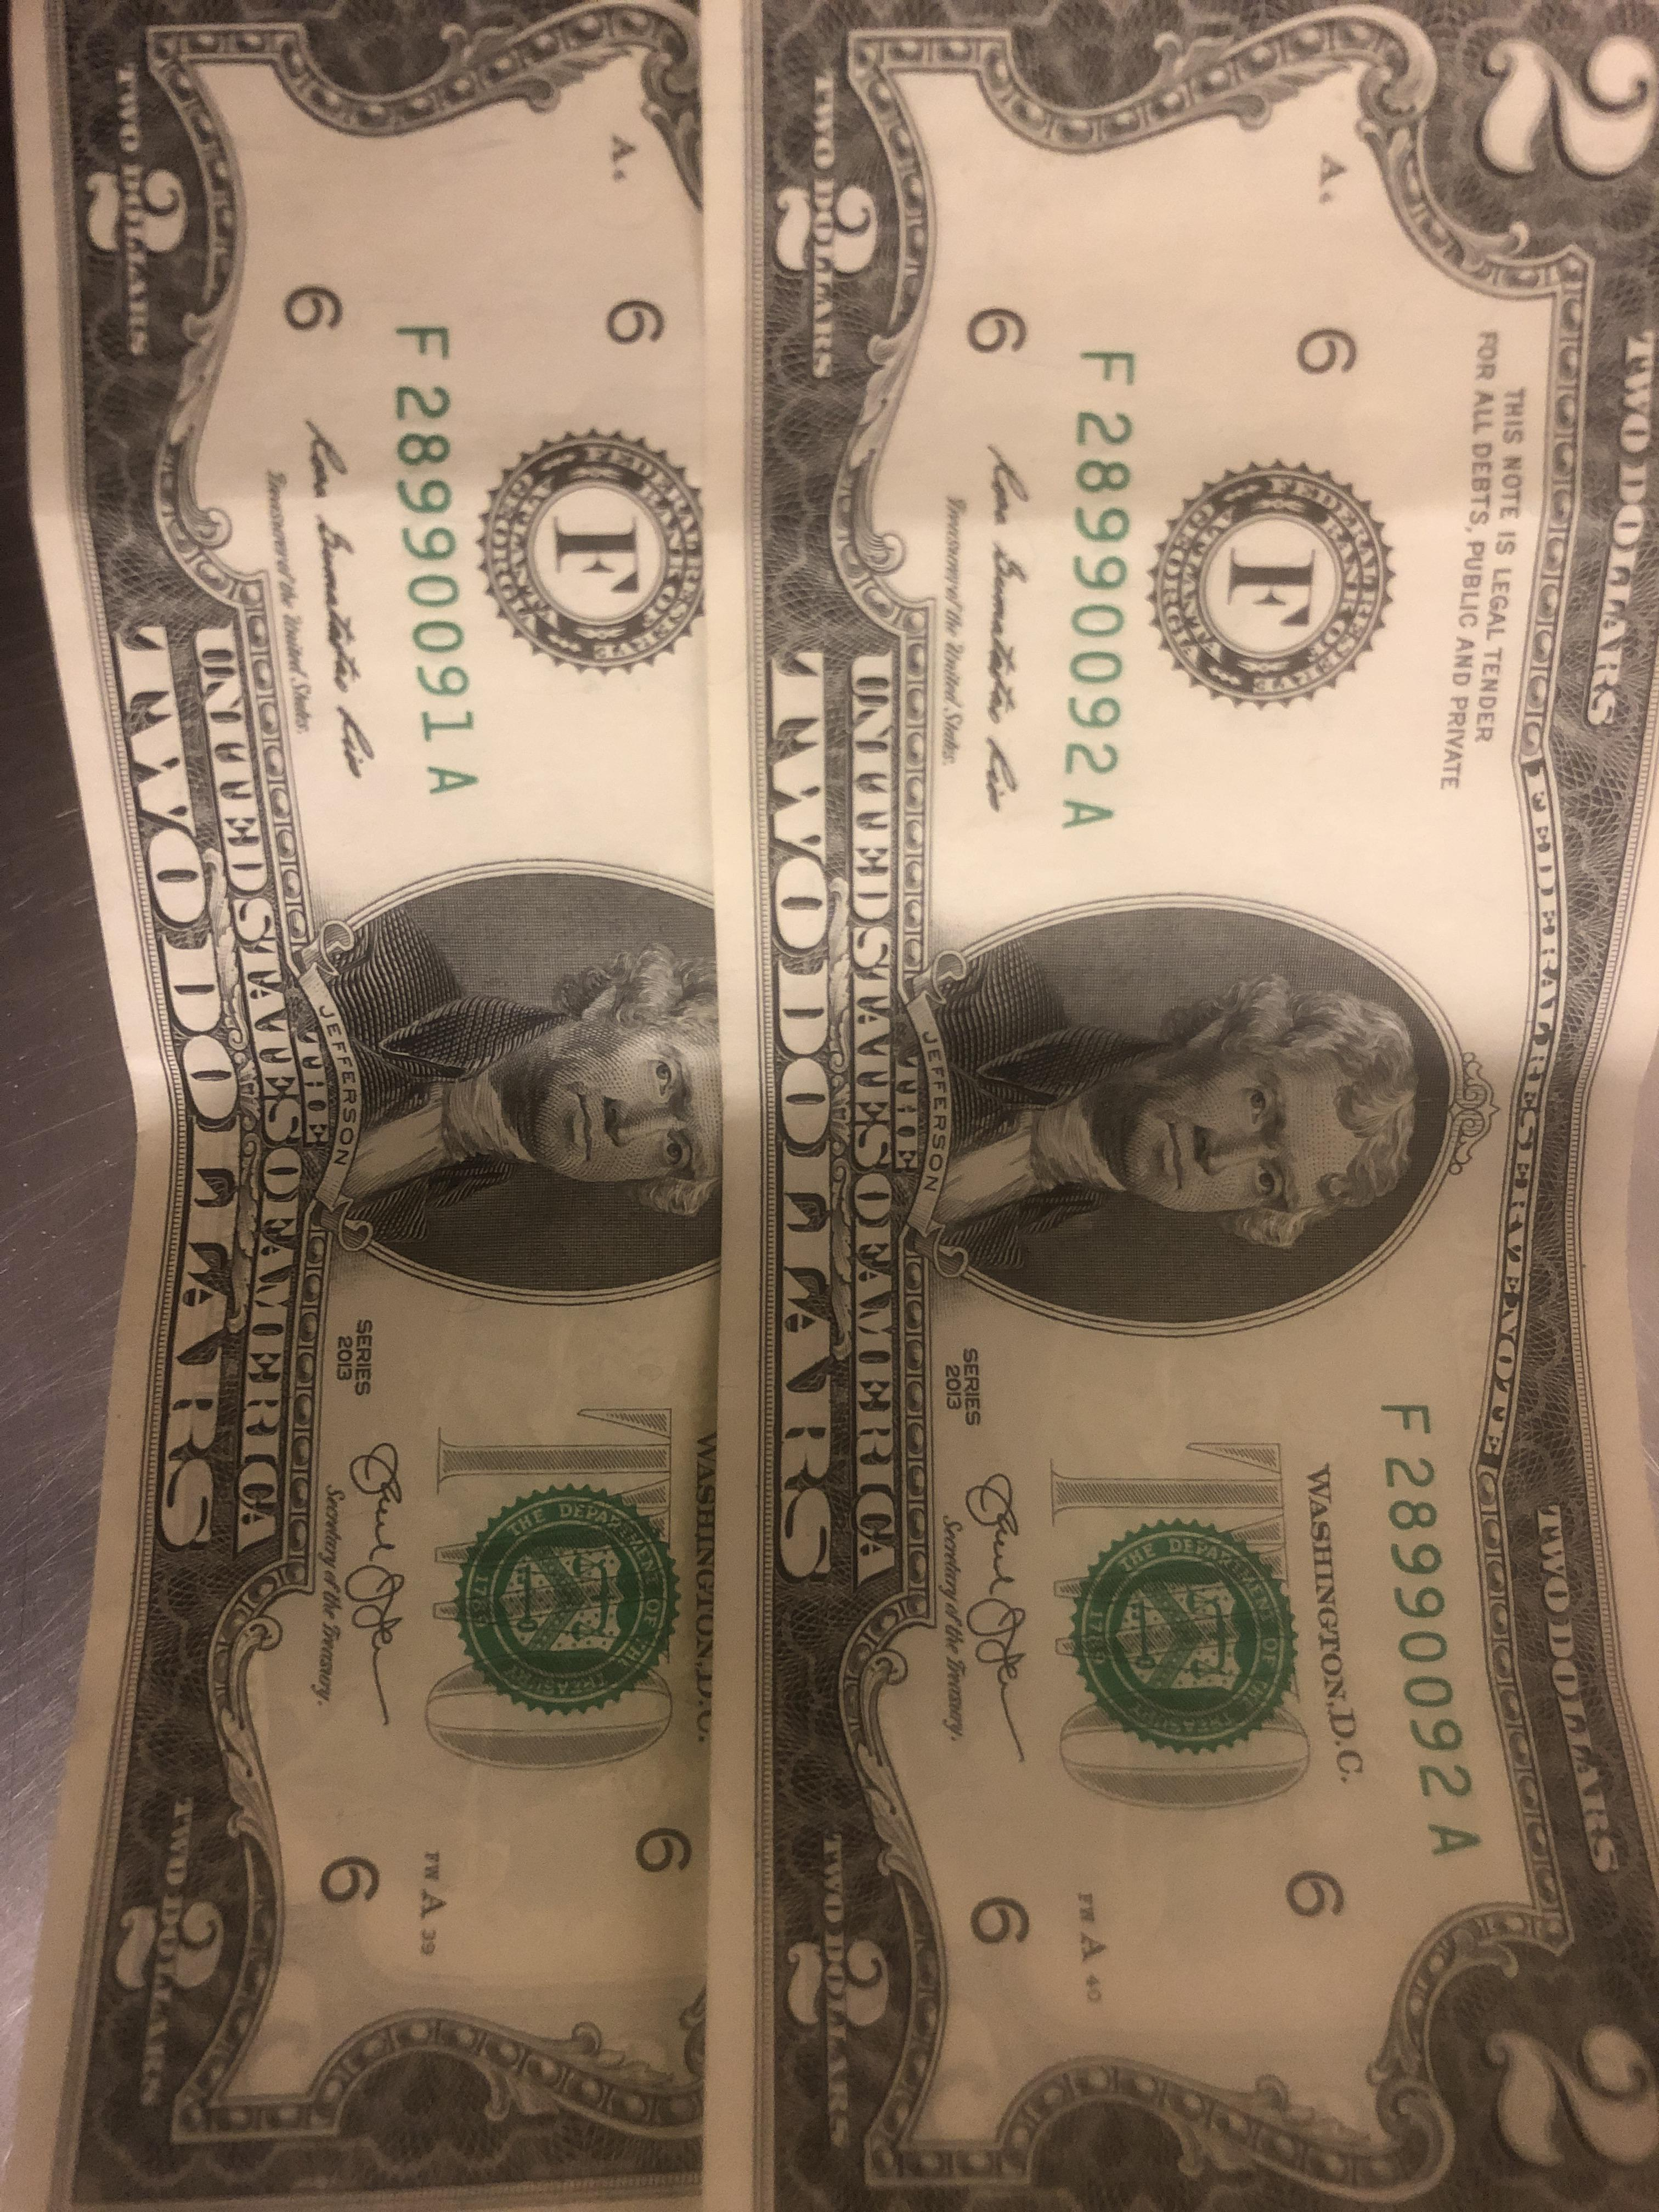 My Two Dollar Bills Are Sequential